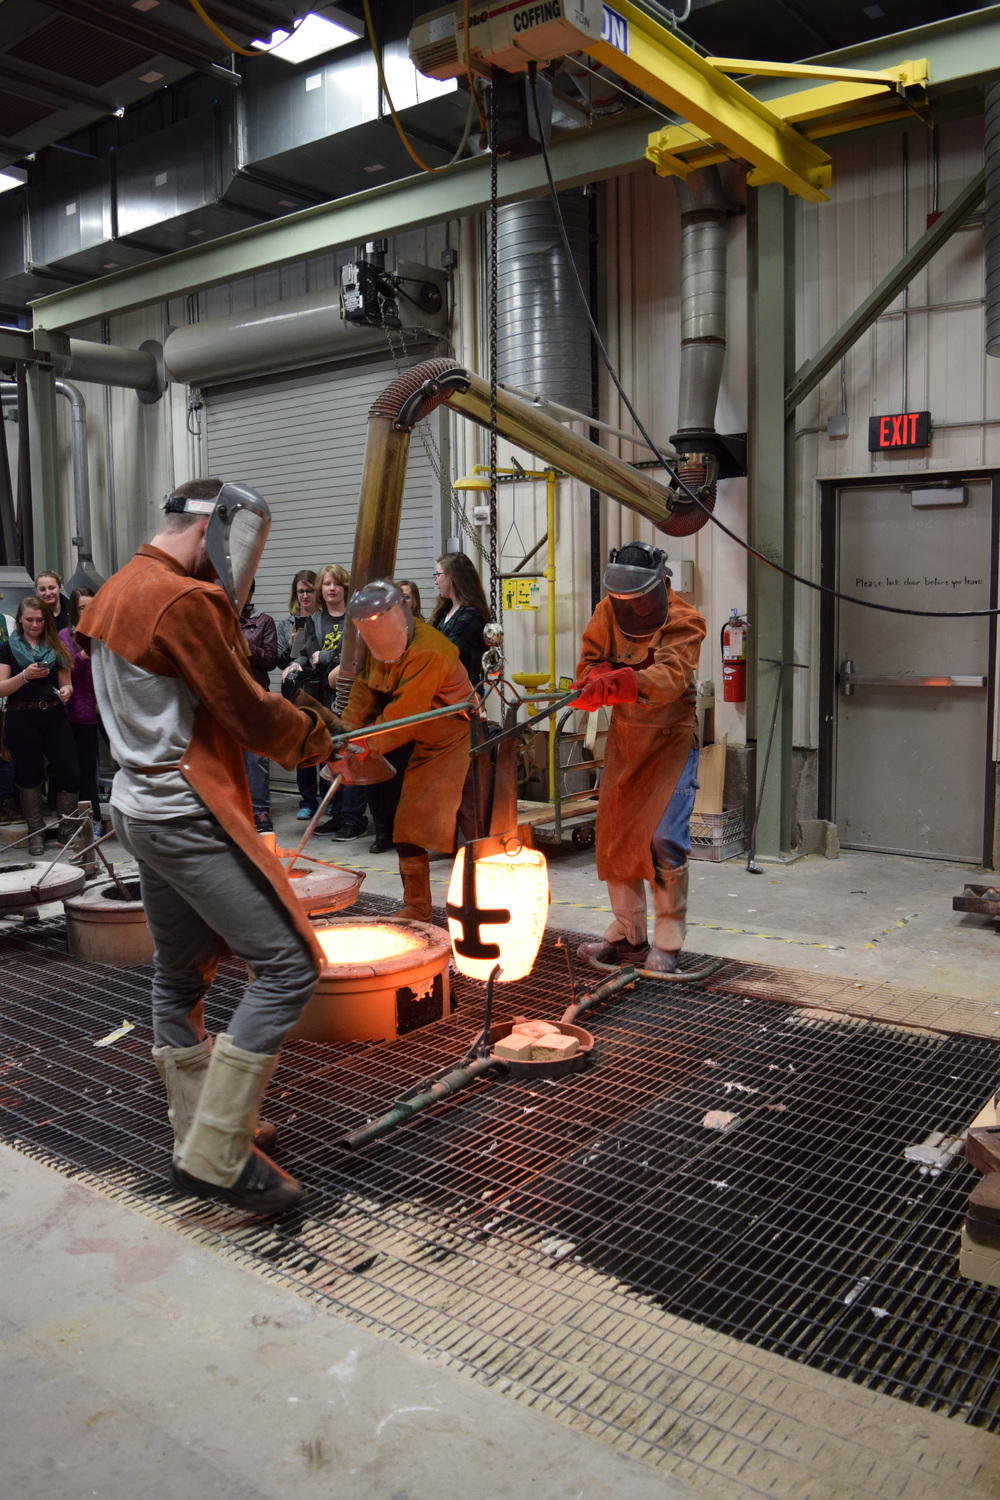 Bringing the bronze crucible out of the forge. A group from a local high school was observing.